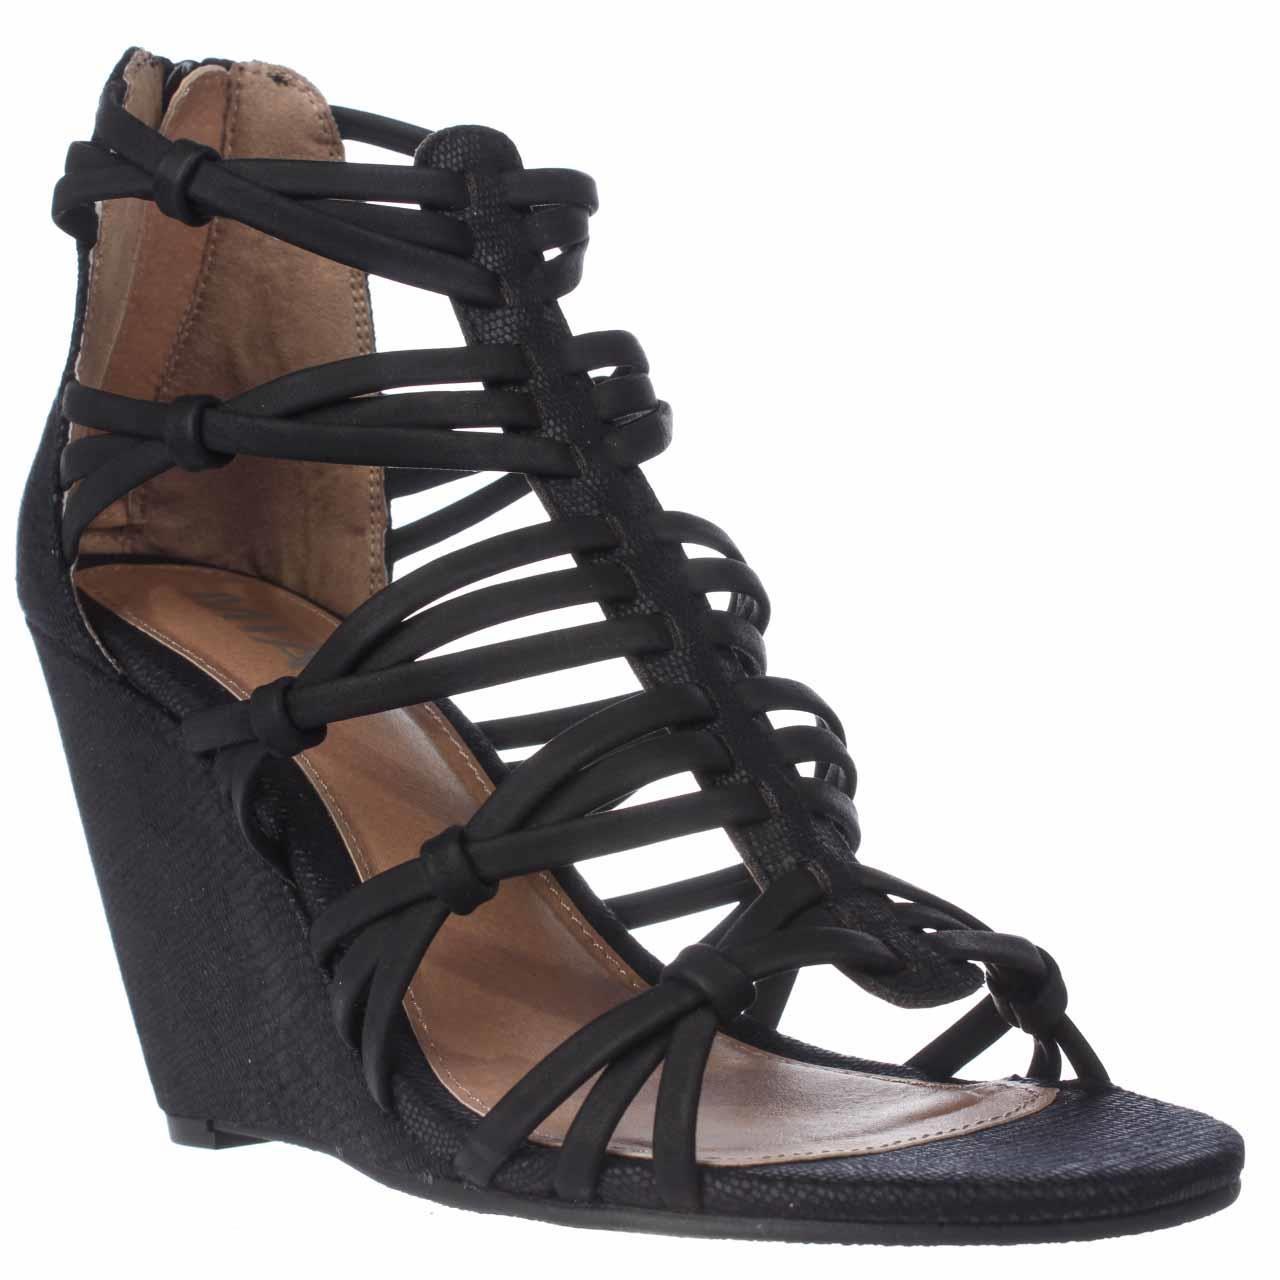 Womens Mia Dylon Wedge Strappy Sandals - Black Vintage Lizard